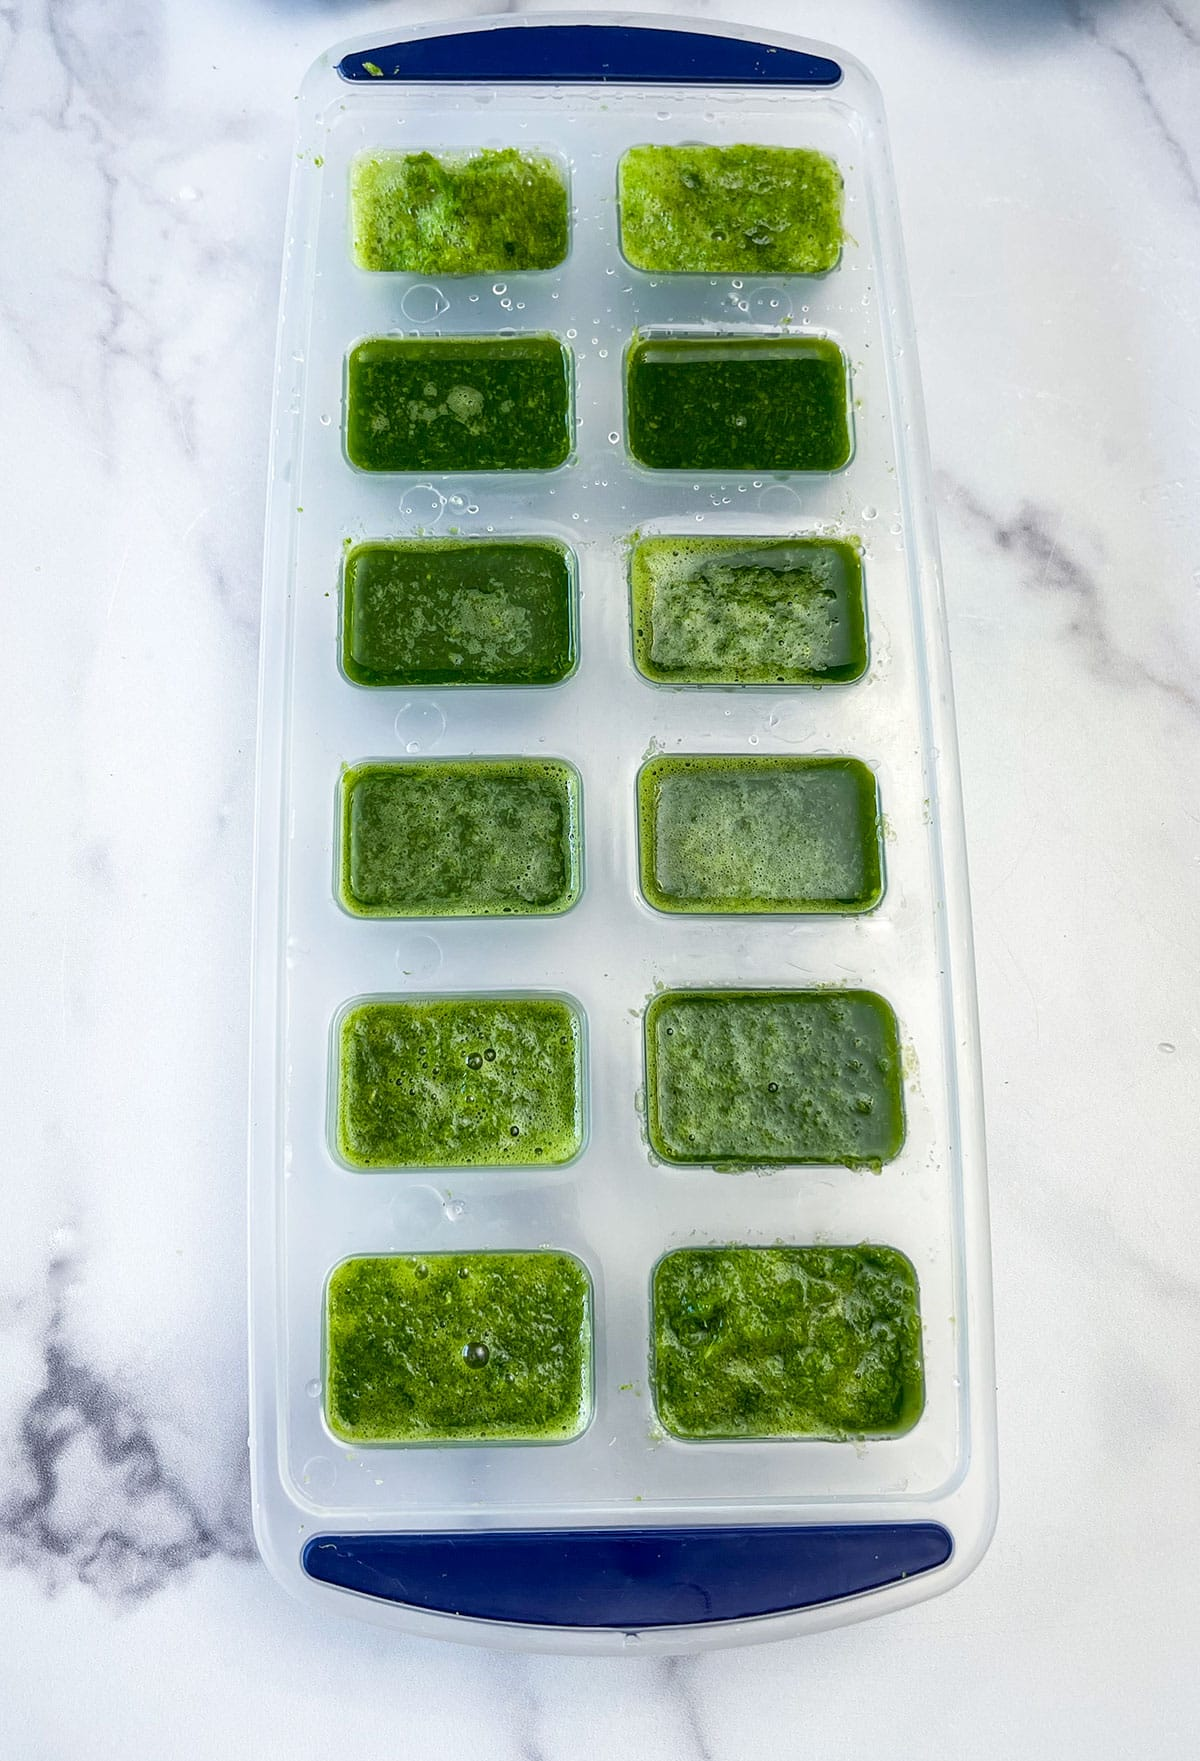 puree kale in ice cube tray on white background